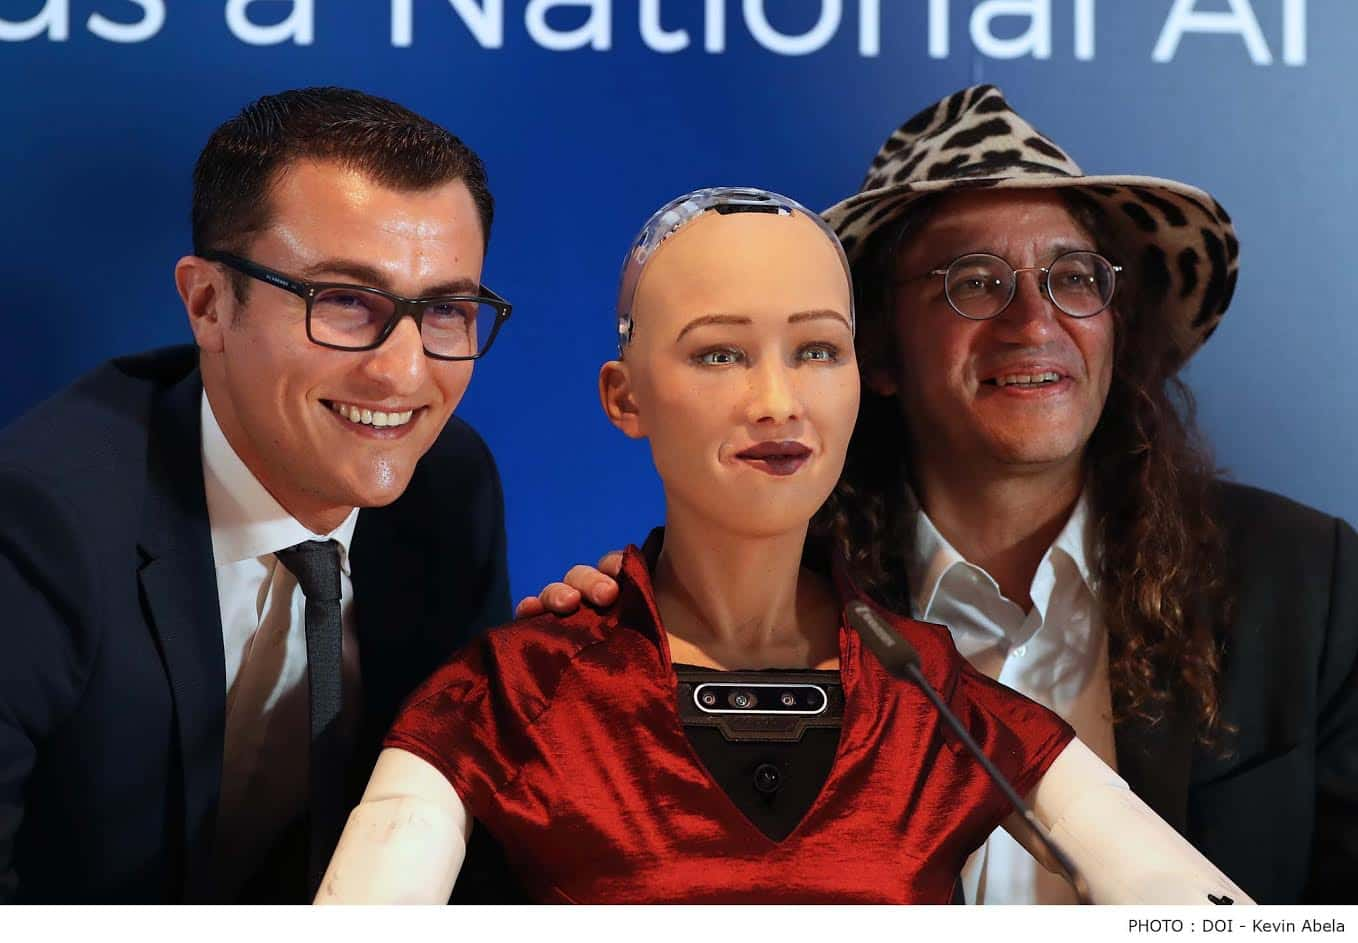 Sophia the robot spoke Maltese